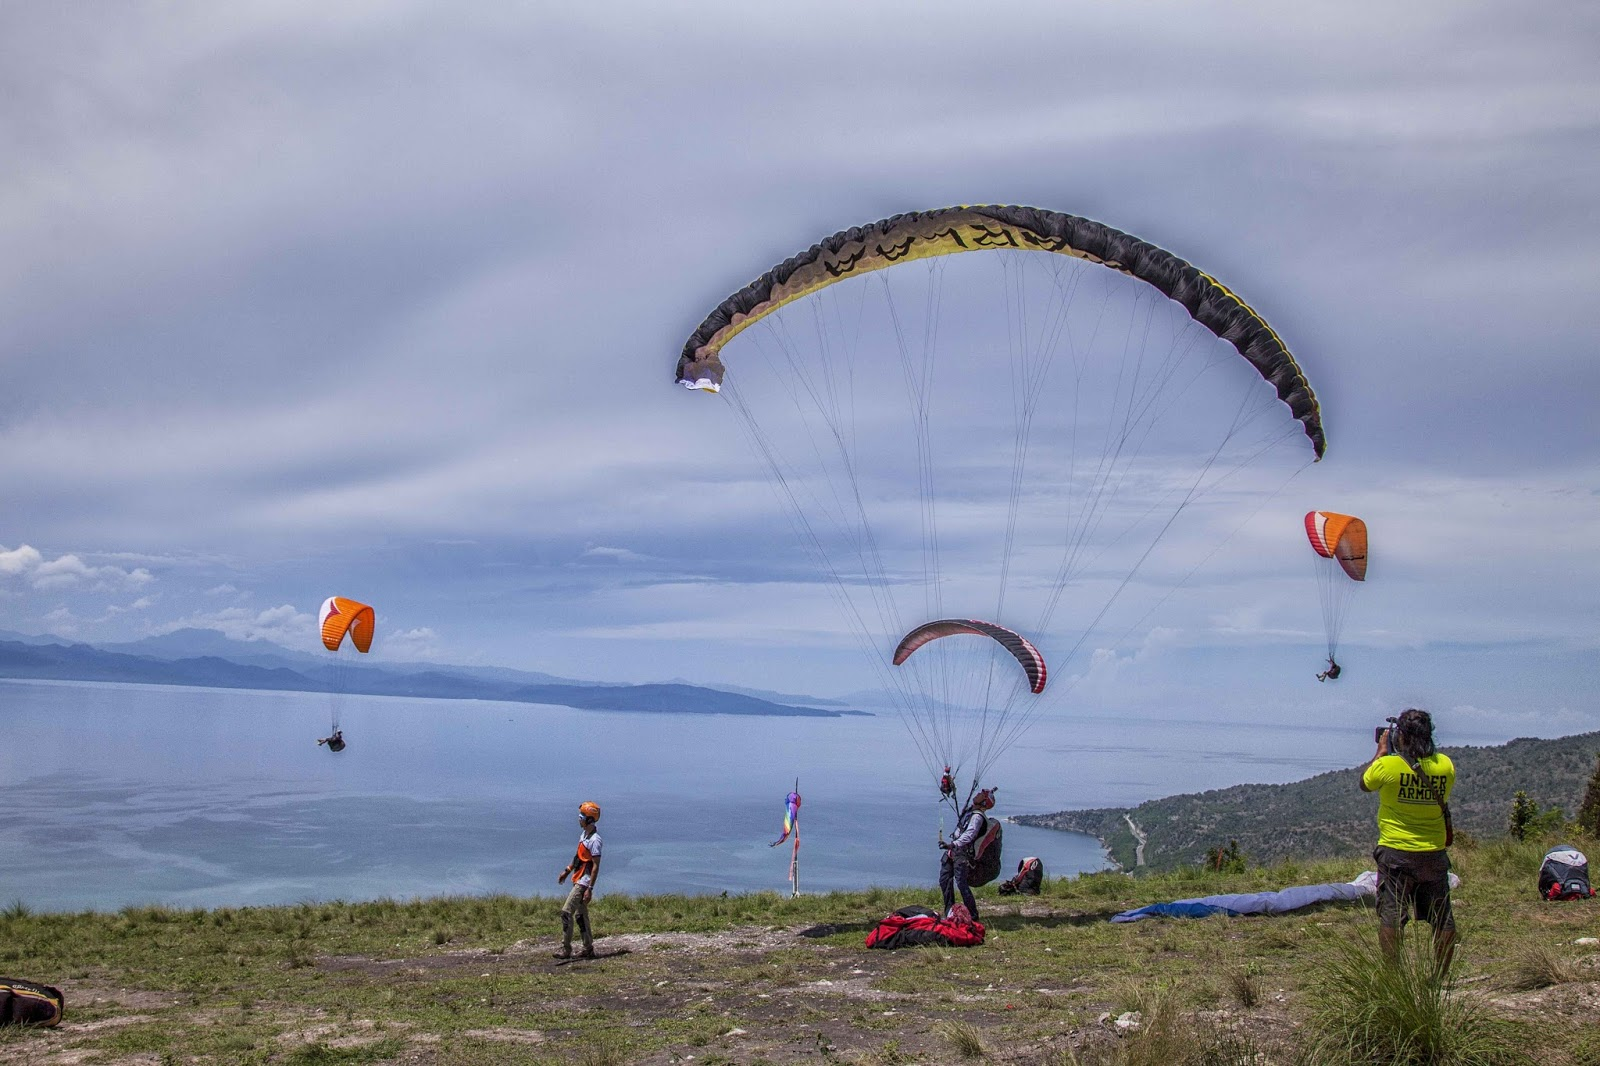 Paragliding – one of the things in Bucket list